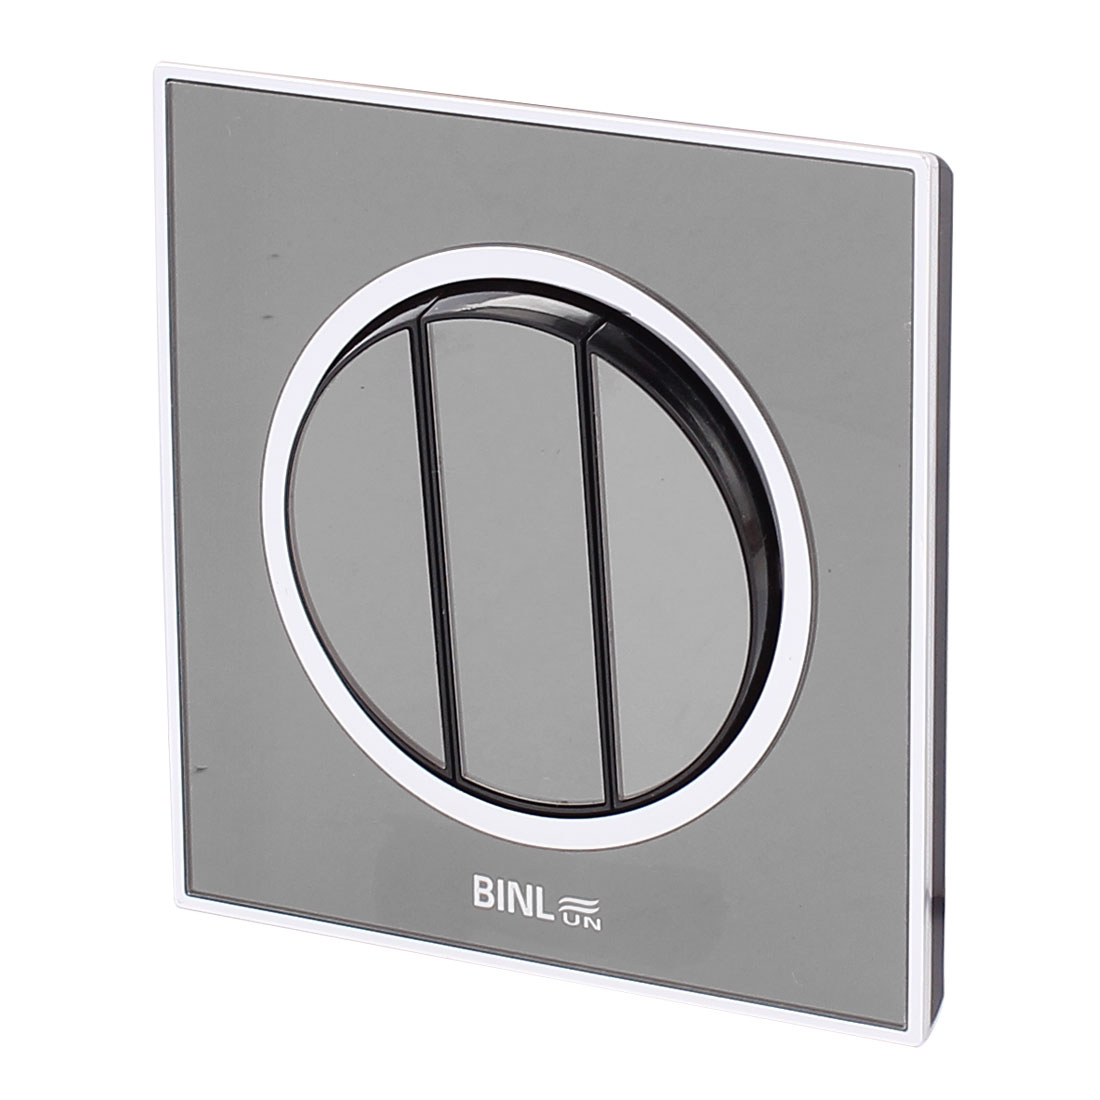 Black Press Button Wall Mounted Panel Switch 3 Gang 1 Way On/Off AC 220V 10A